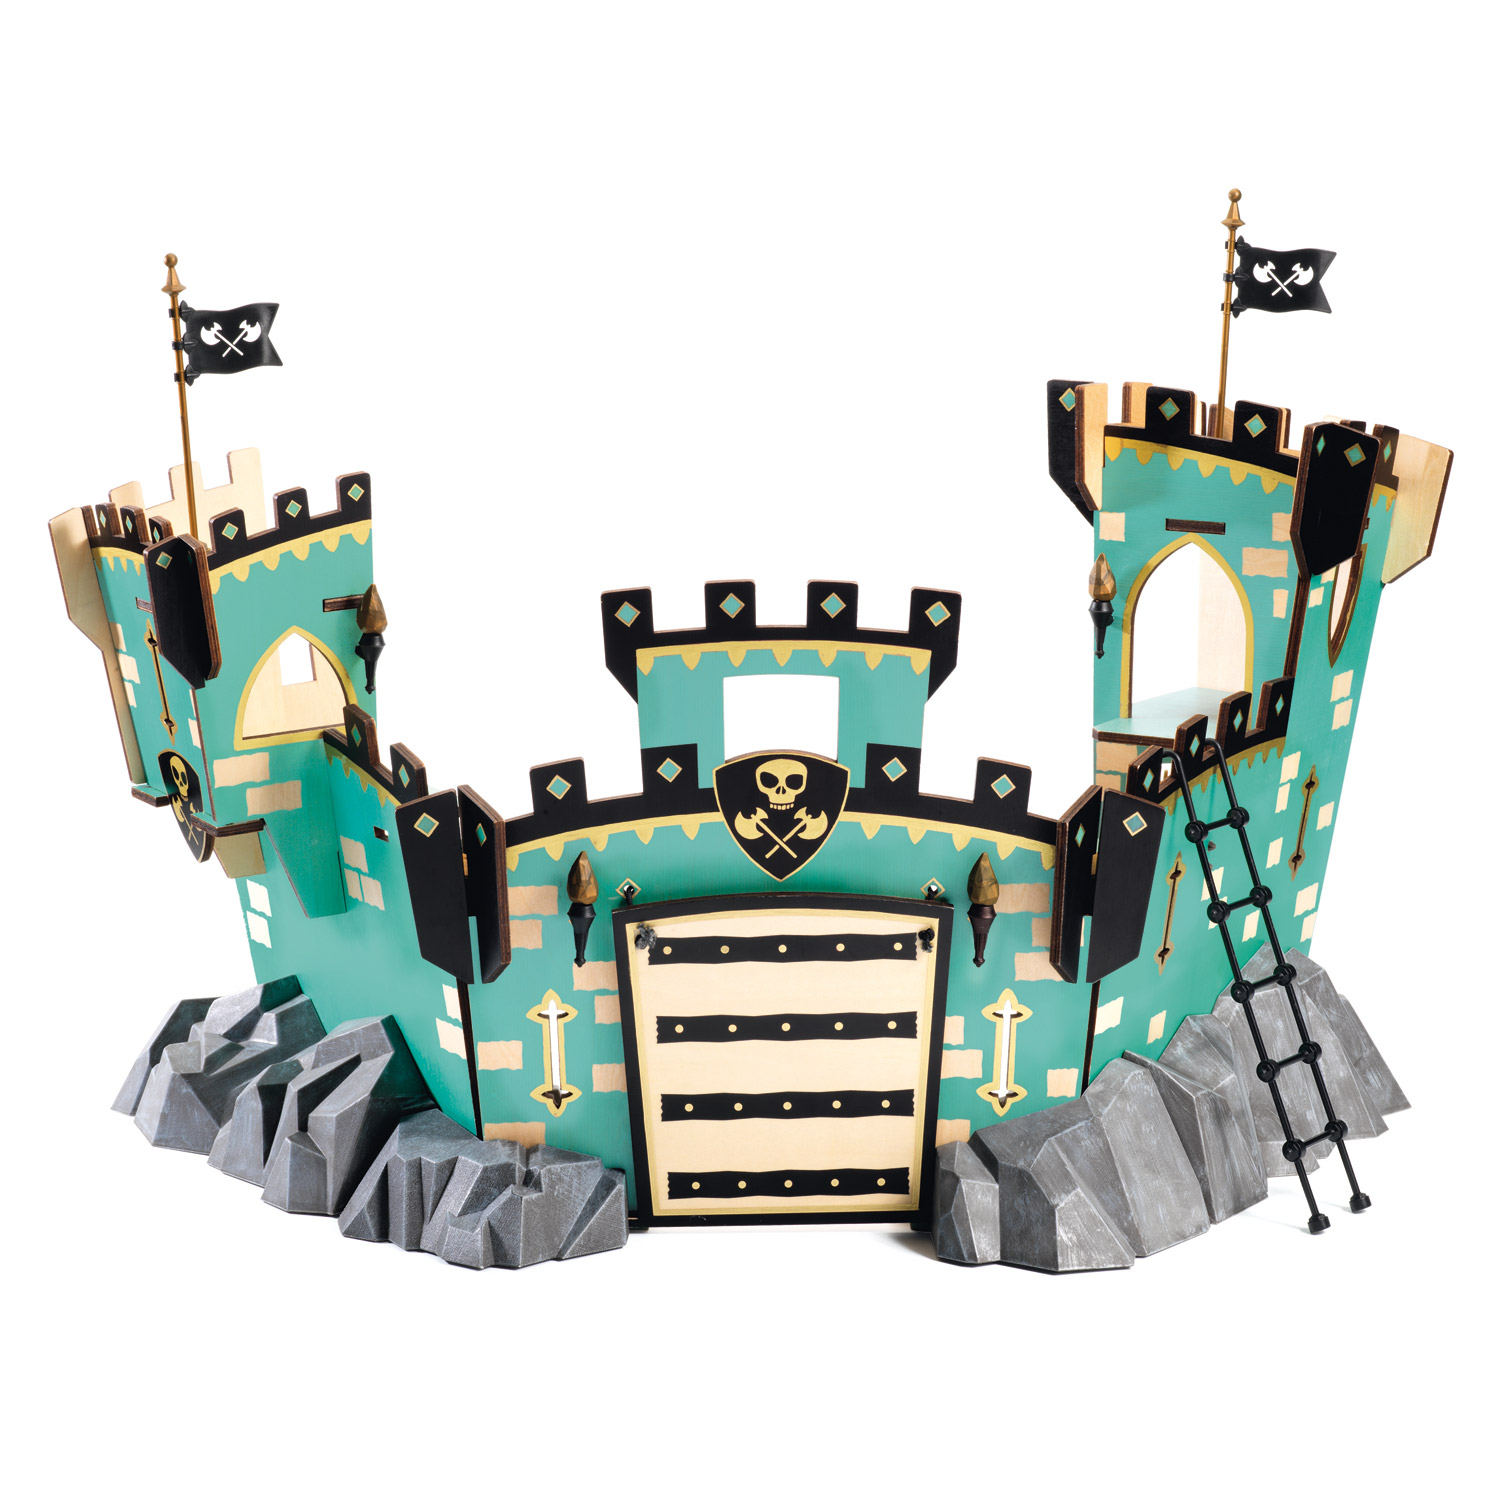 Château Arty Toys : Castle on the rock